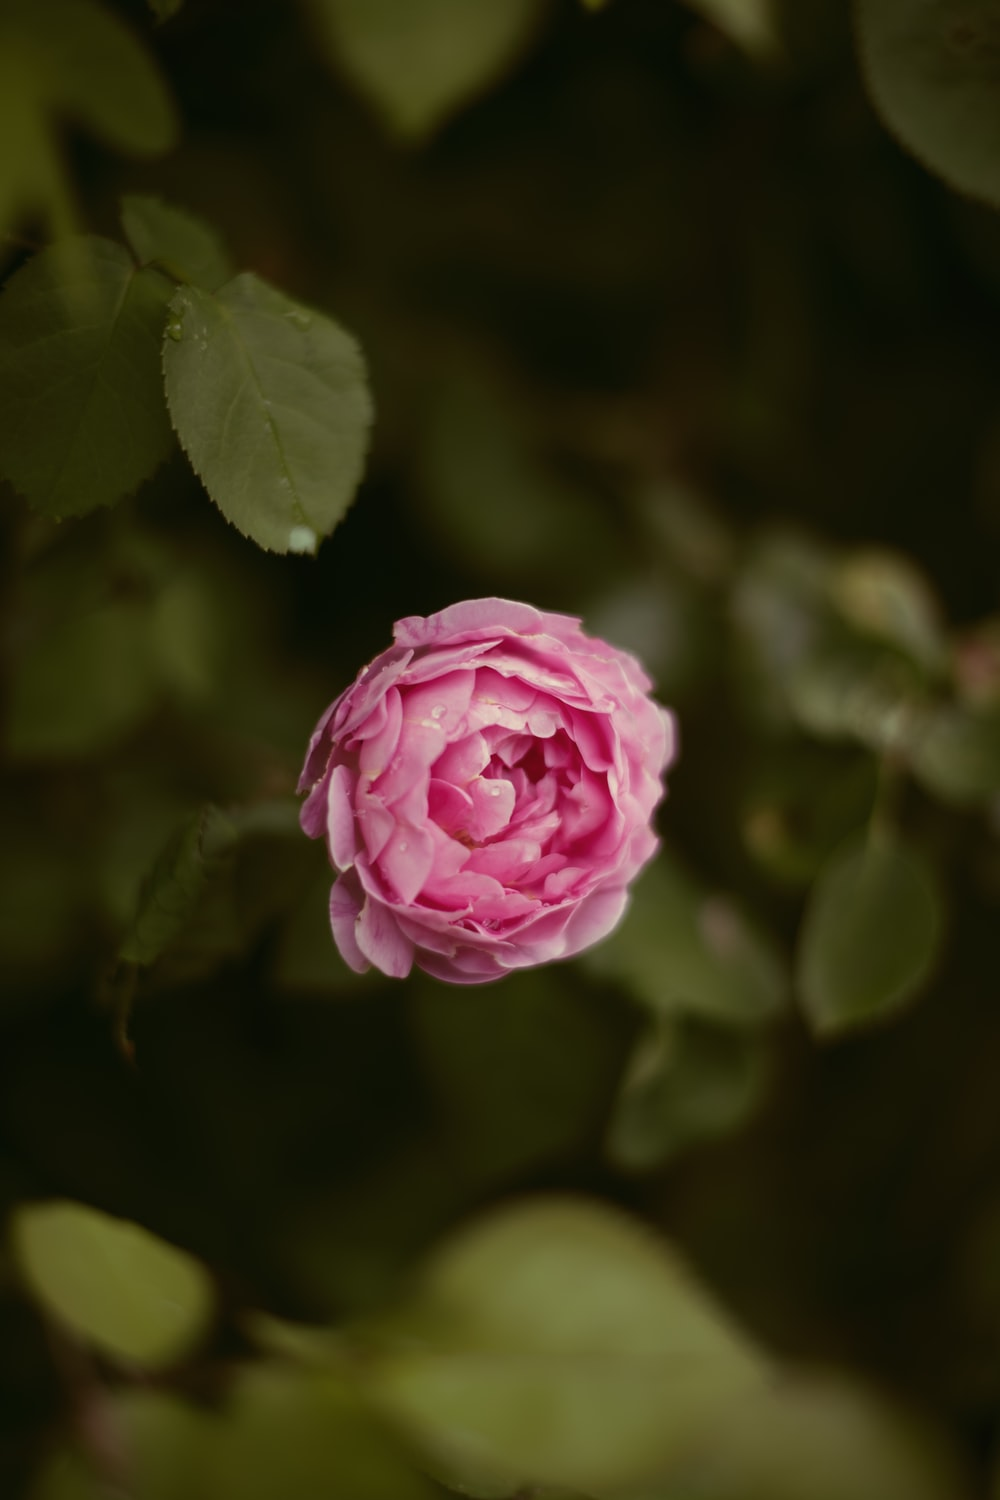 pink rose in bloom during daytime